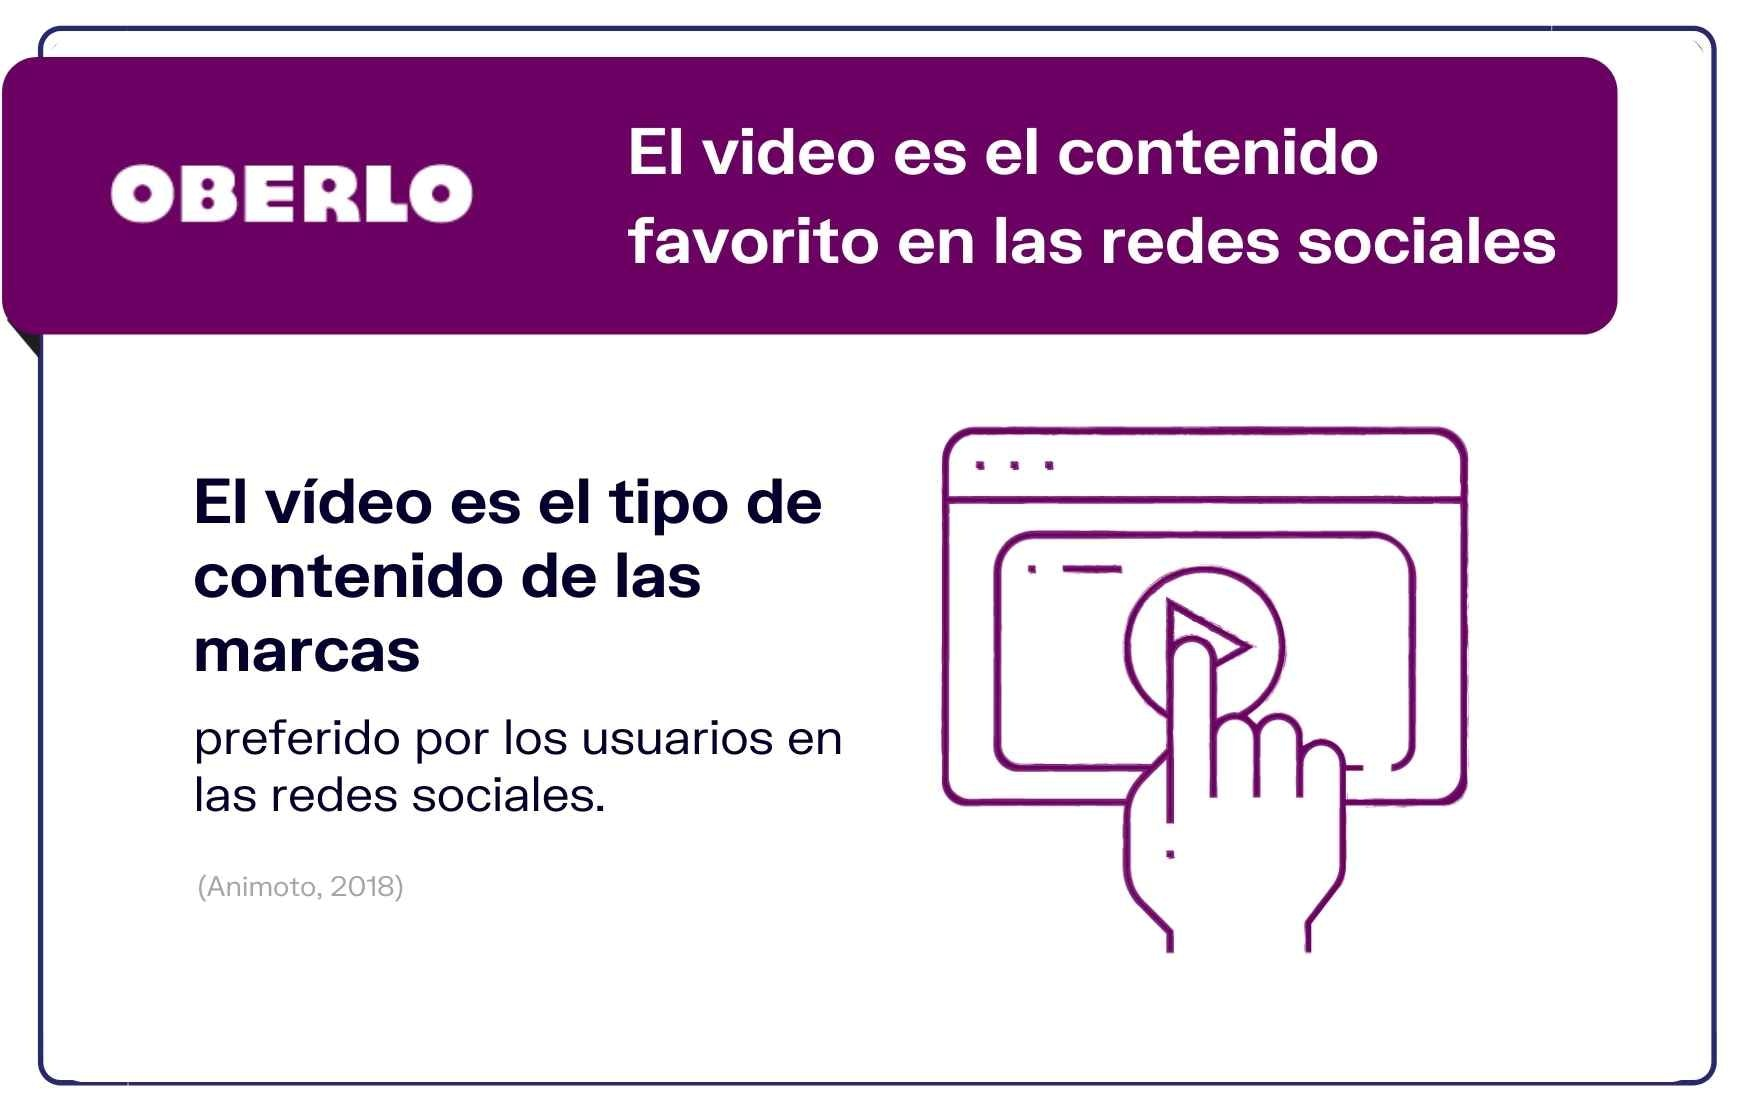 Marketing video en cifras